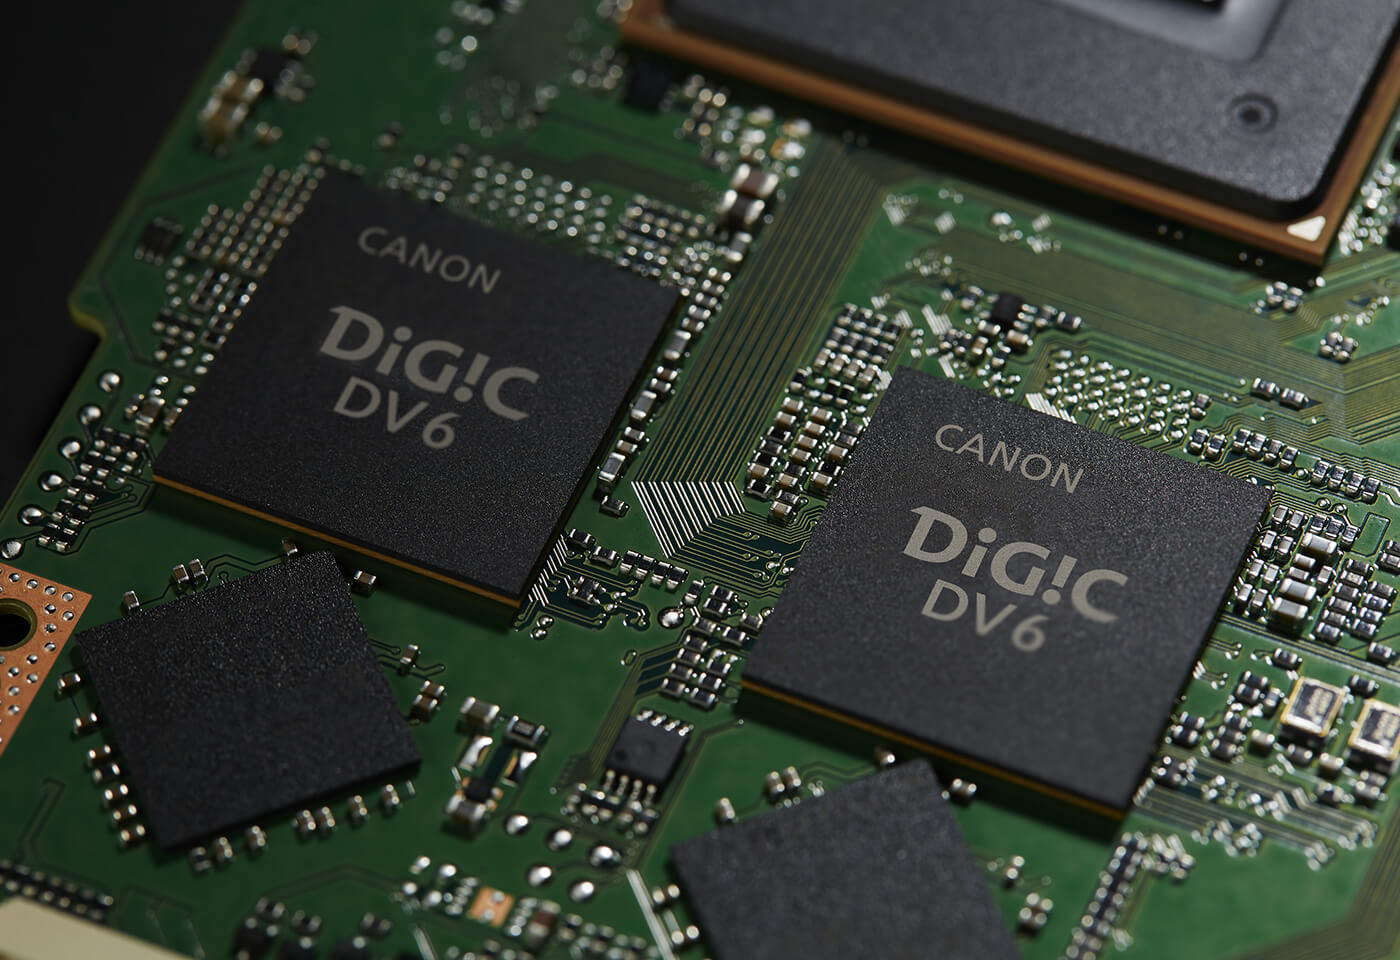 Dual DIGIC DV 6 image processors give you recording ability internally 4K UHD/50P MP4, 4K DCI RAW Light and continuous 120fps high frame rate in Full HD.